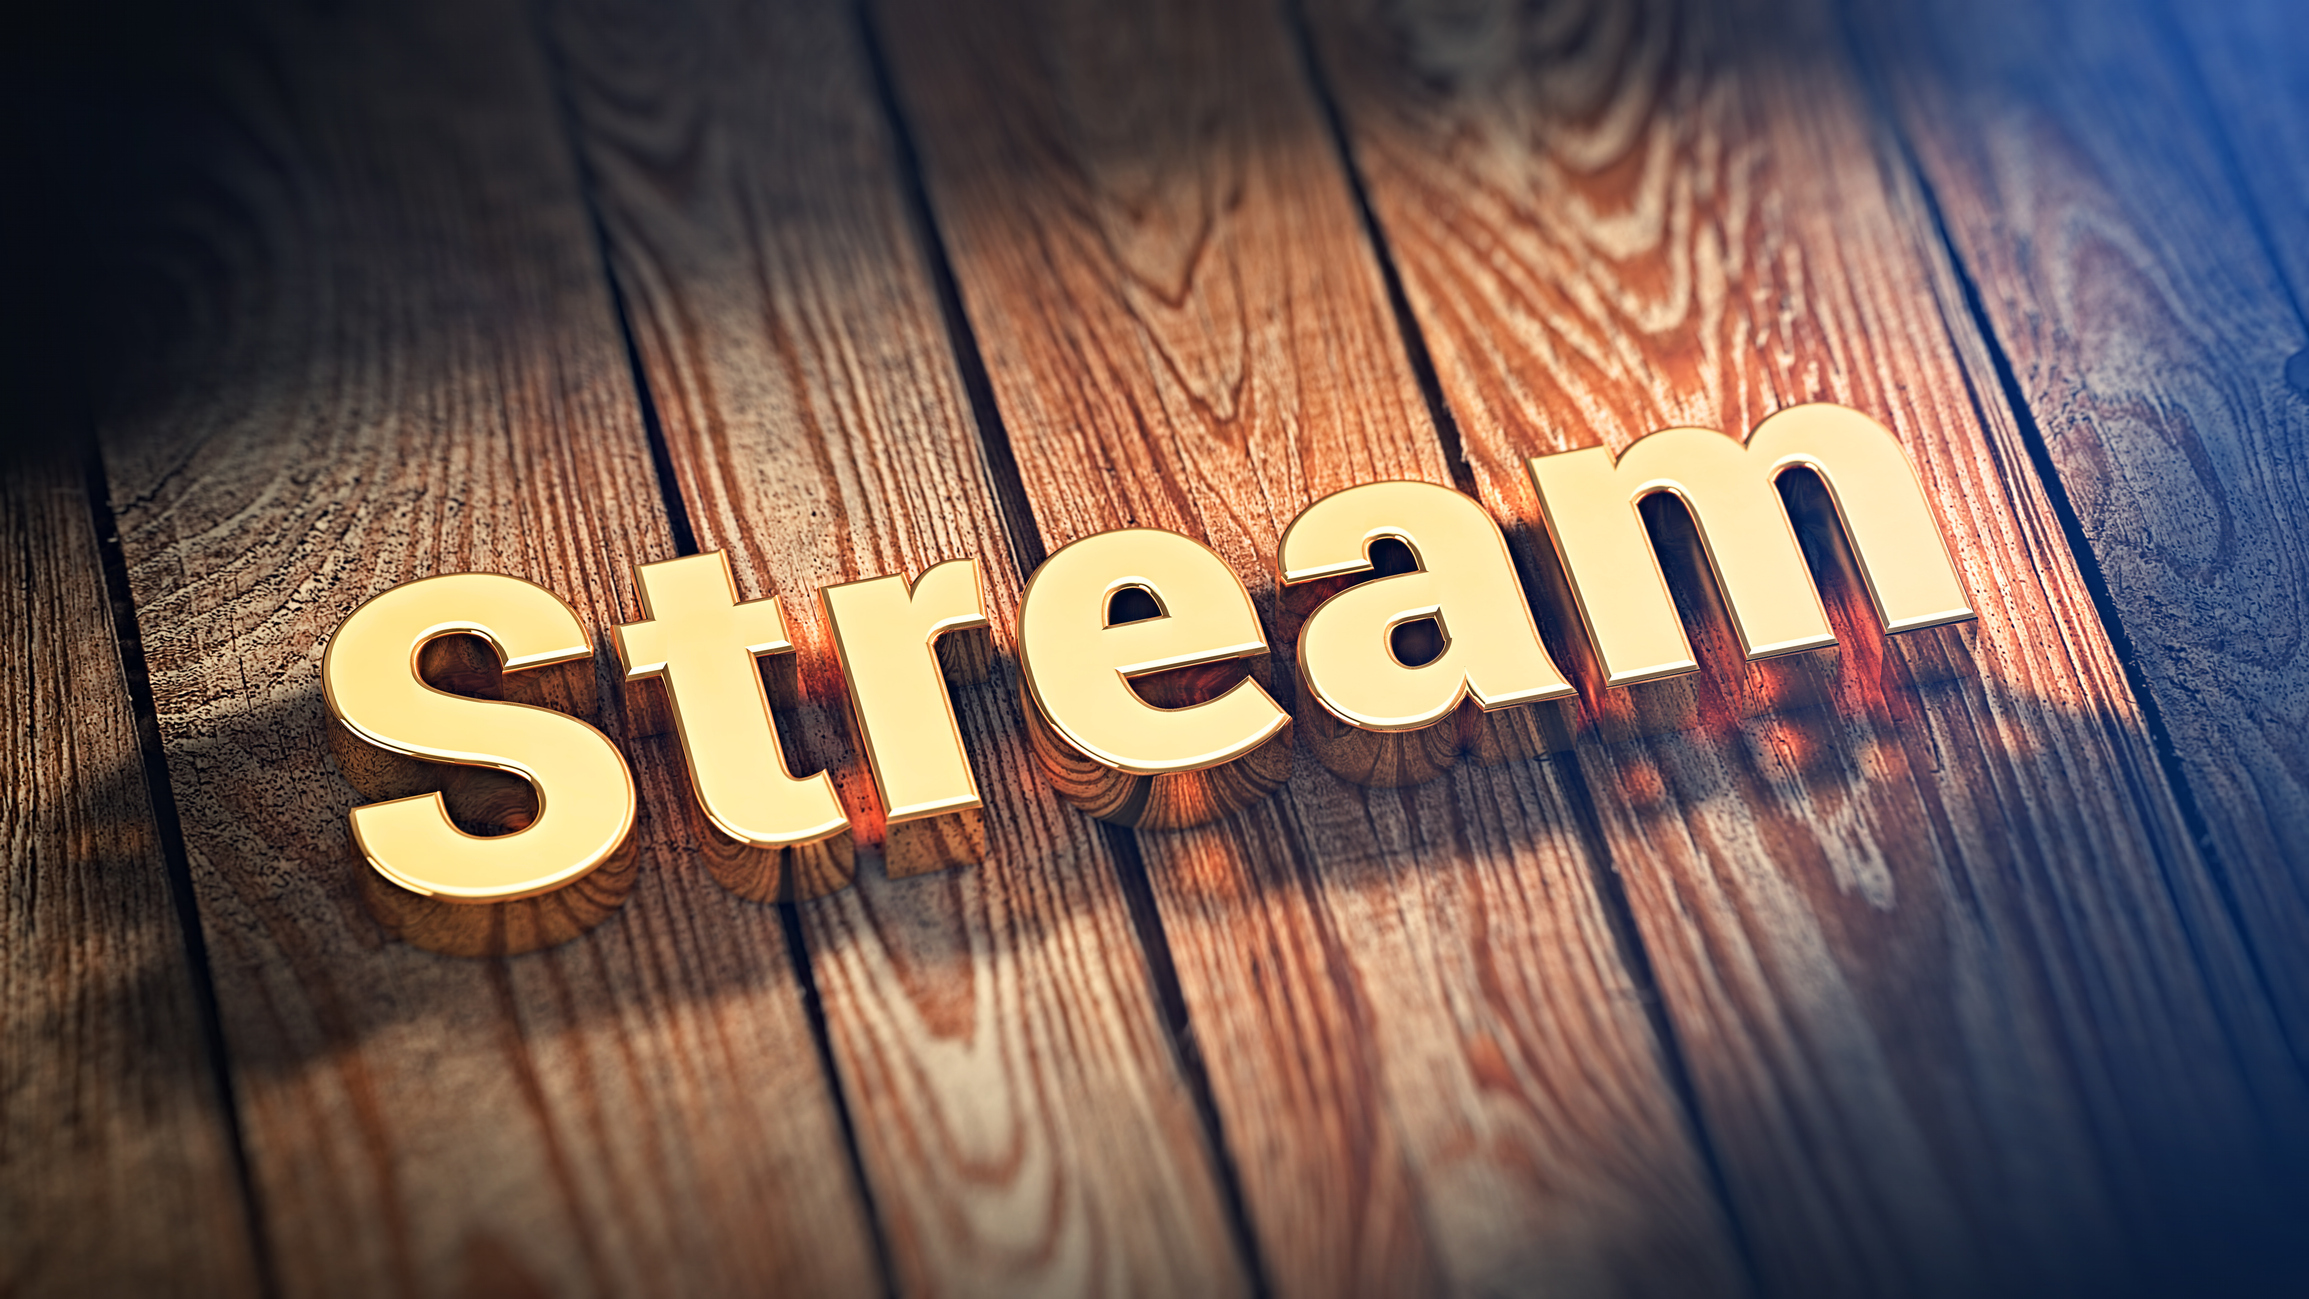 Stream letters on wood slabs